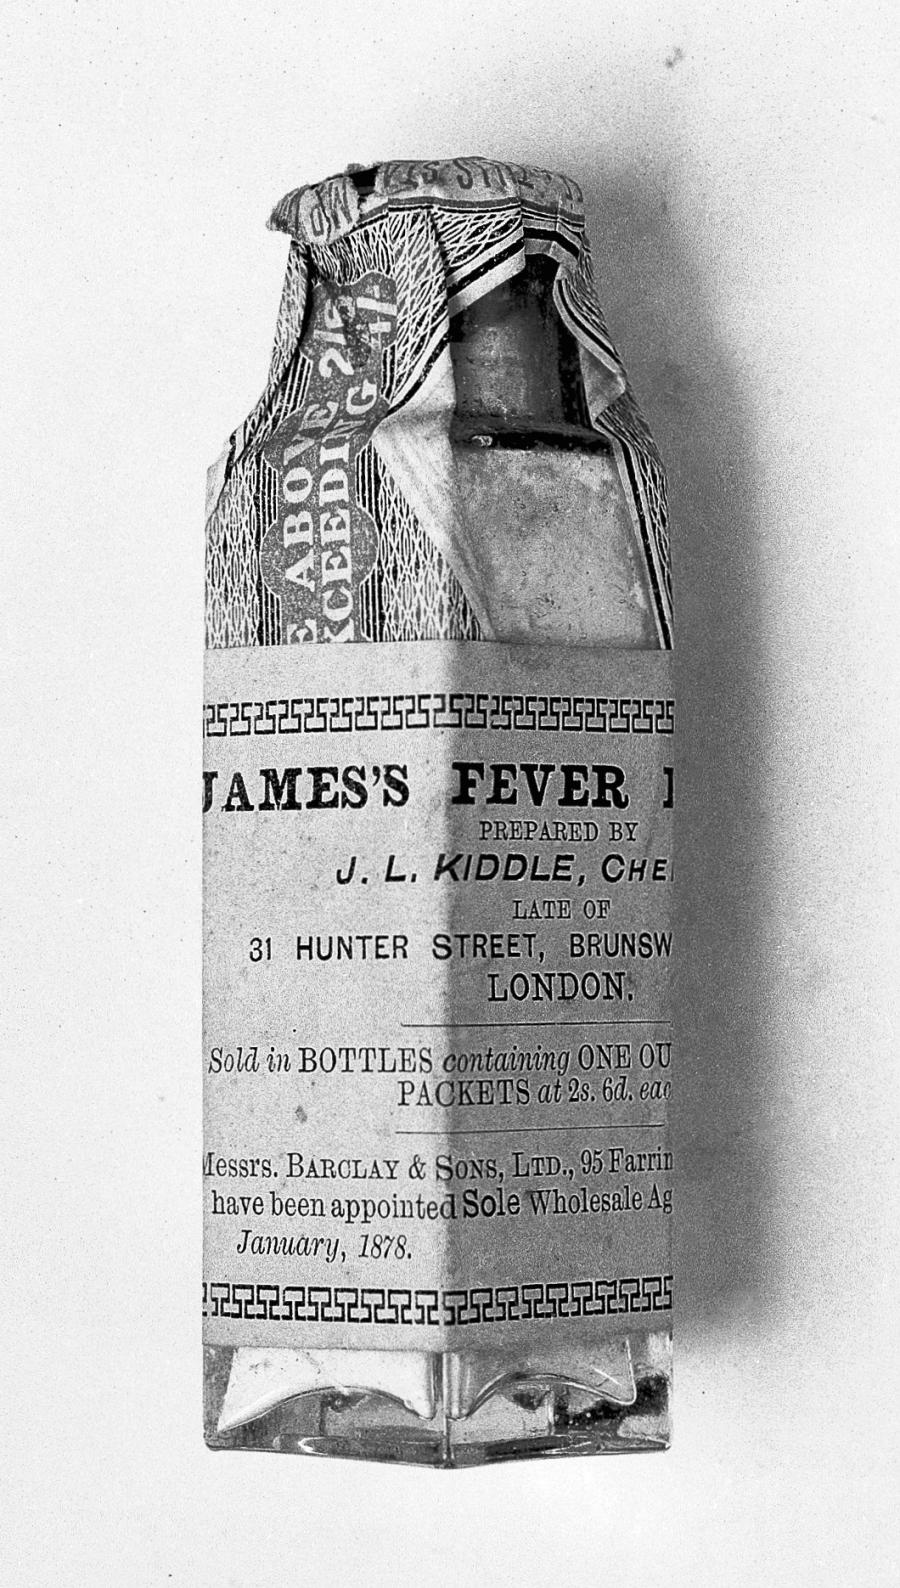 Dr. James's Fever Powder